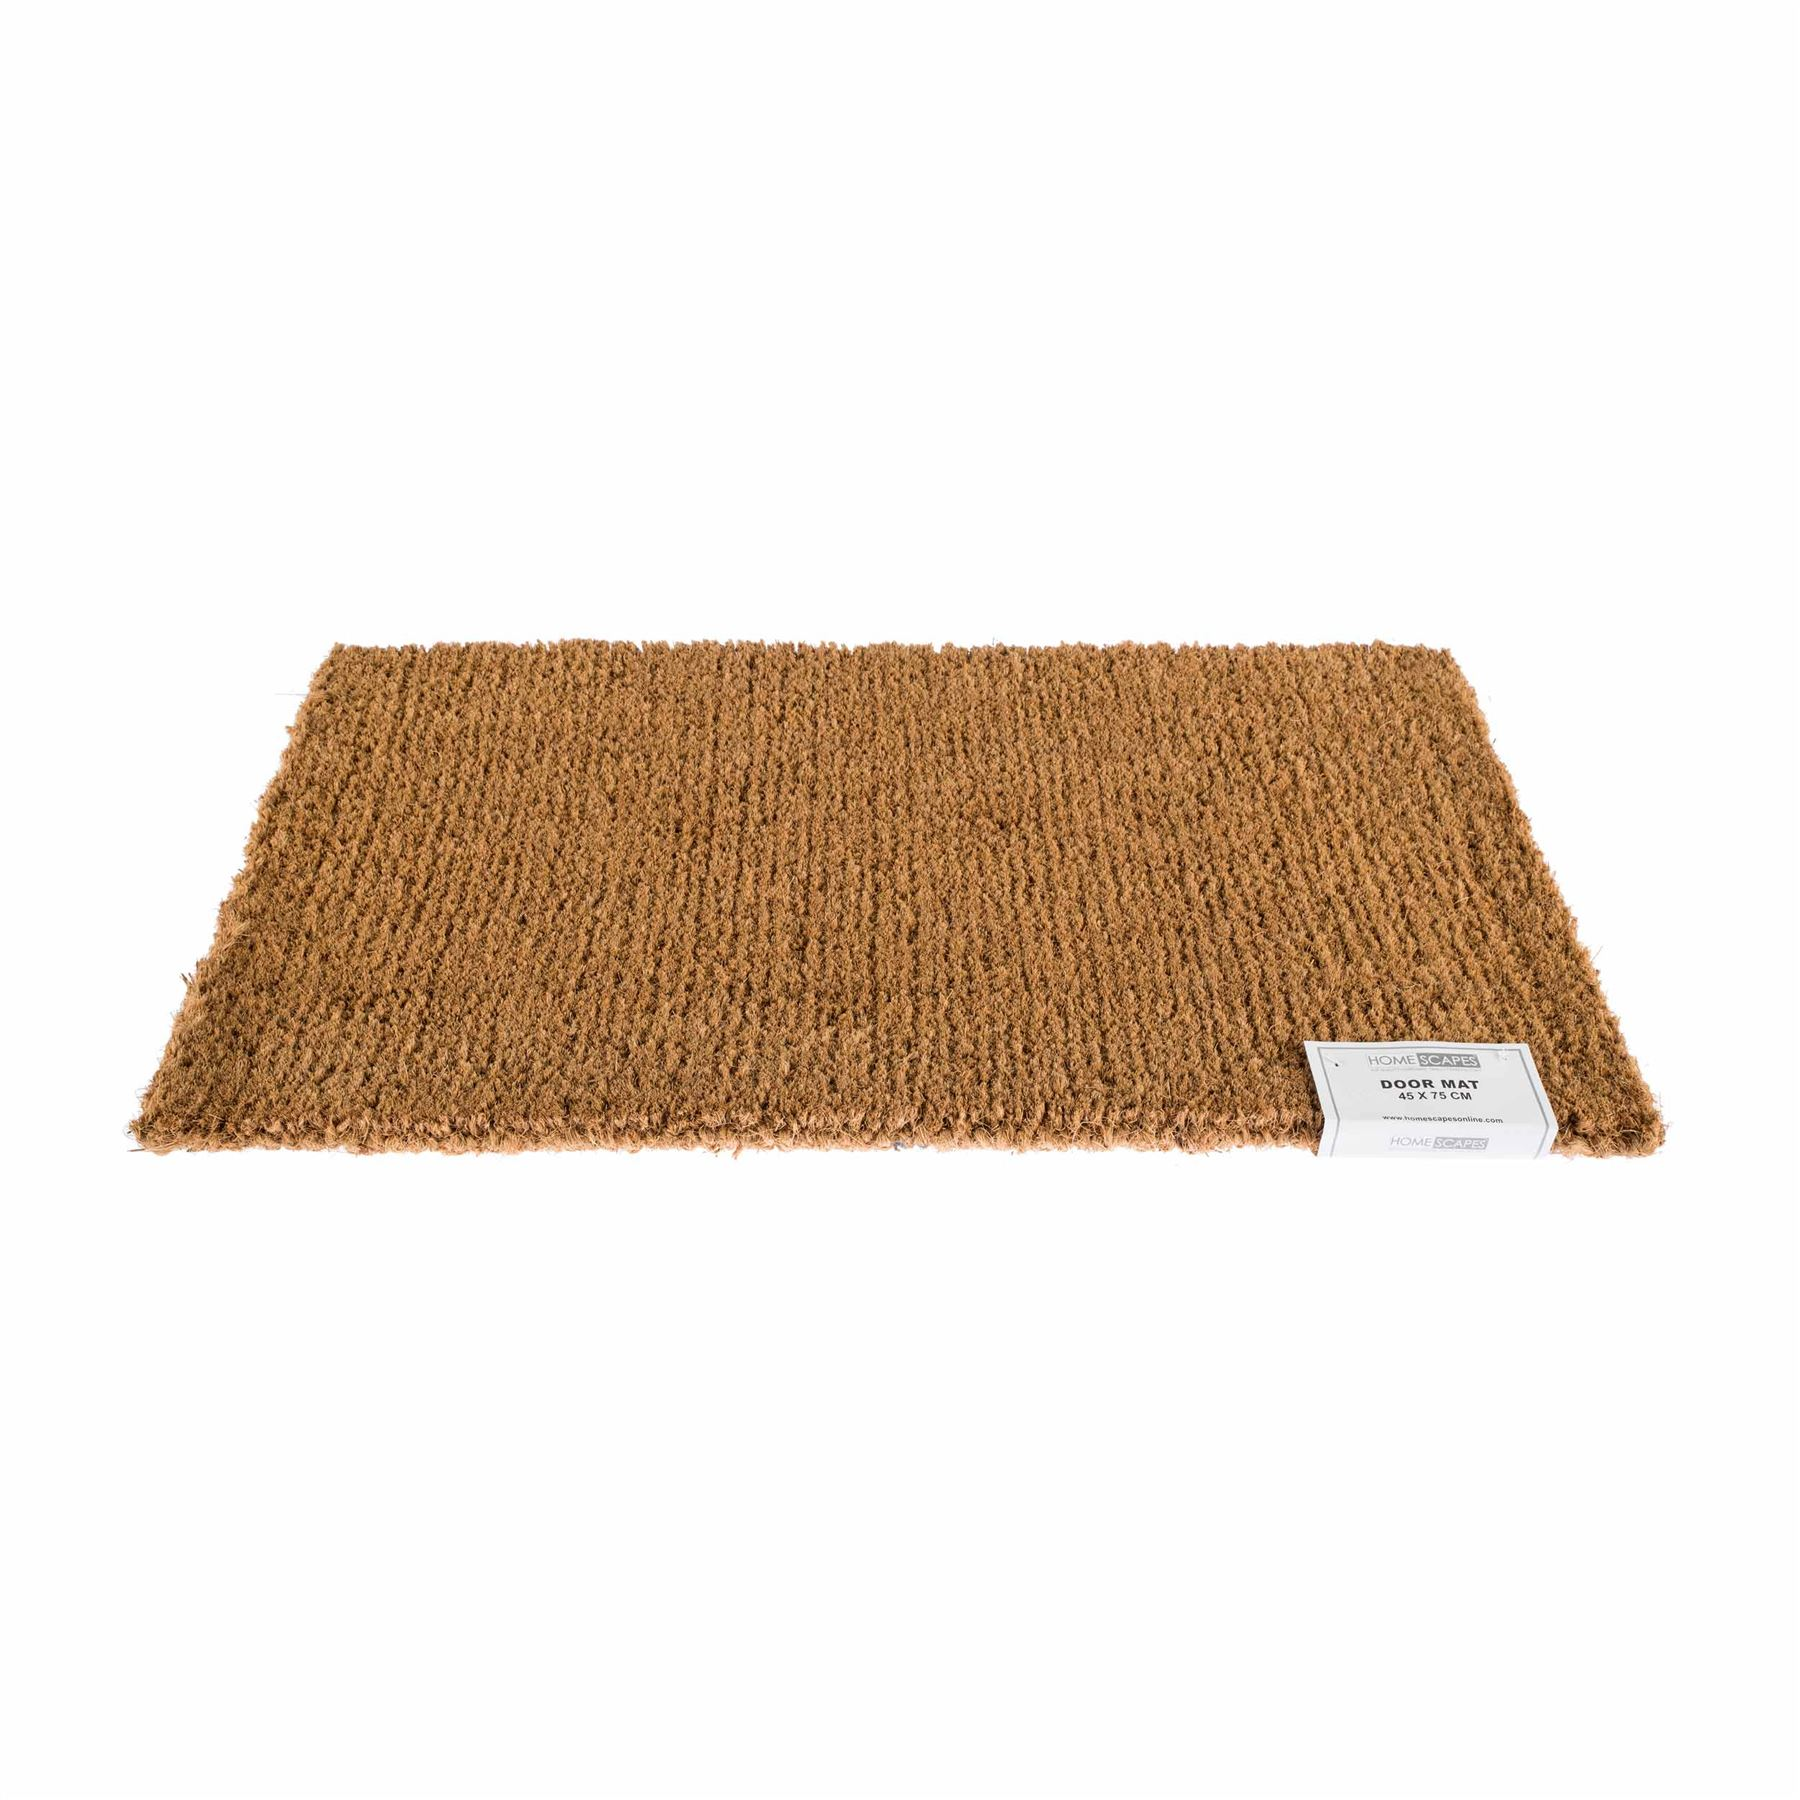 Large Door Mats Outdoor Coir Rubber Door Mat Indoor Outdoor Use Large Wrought Iron